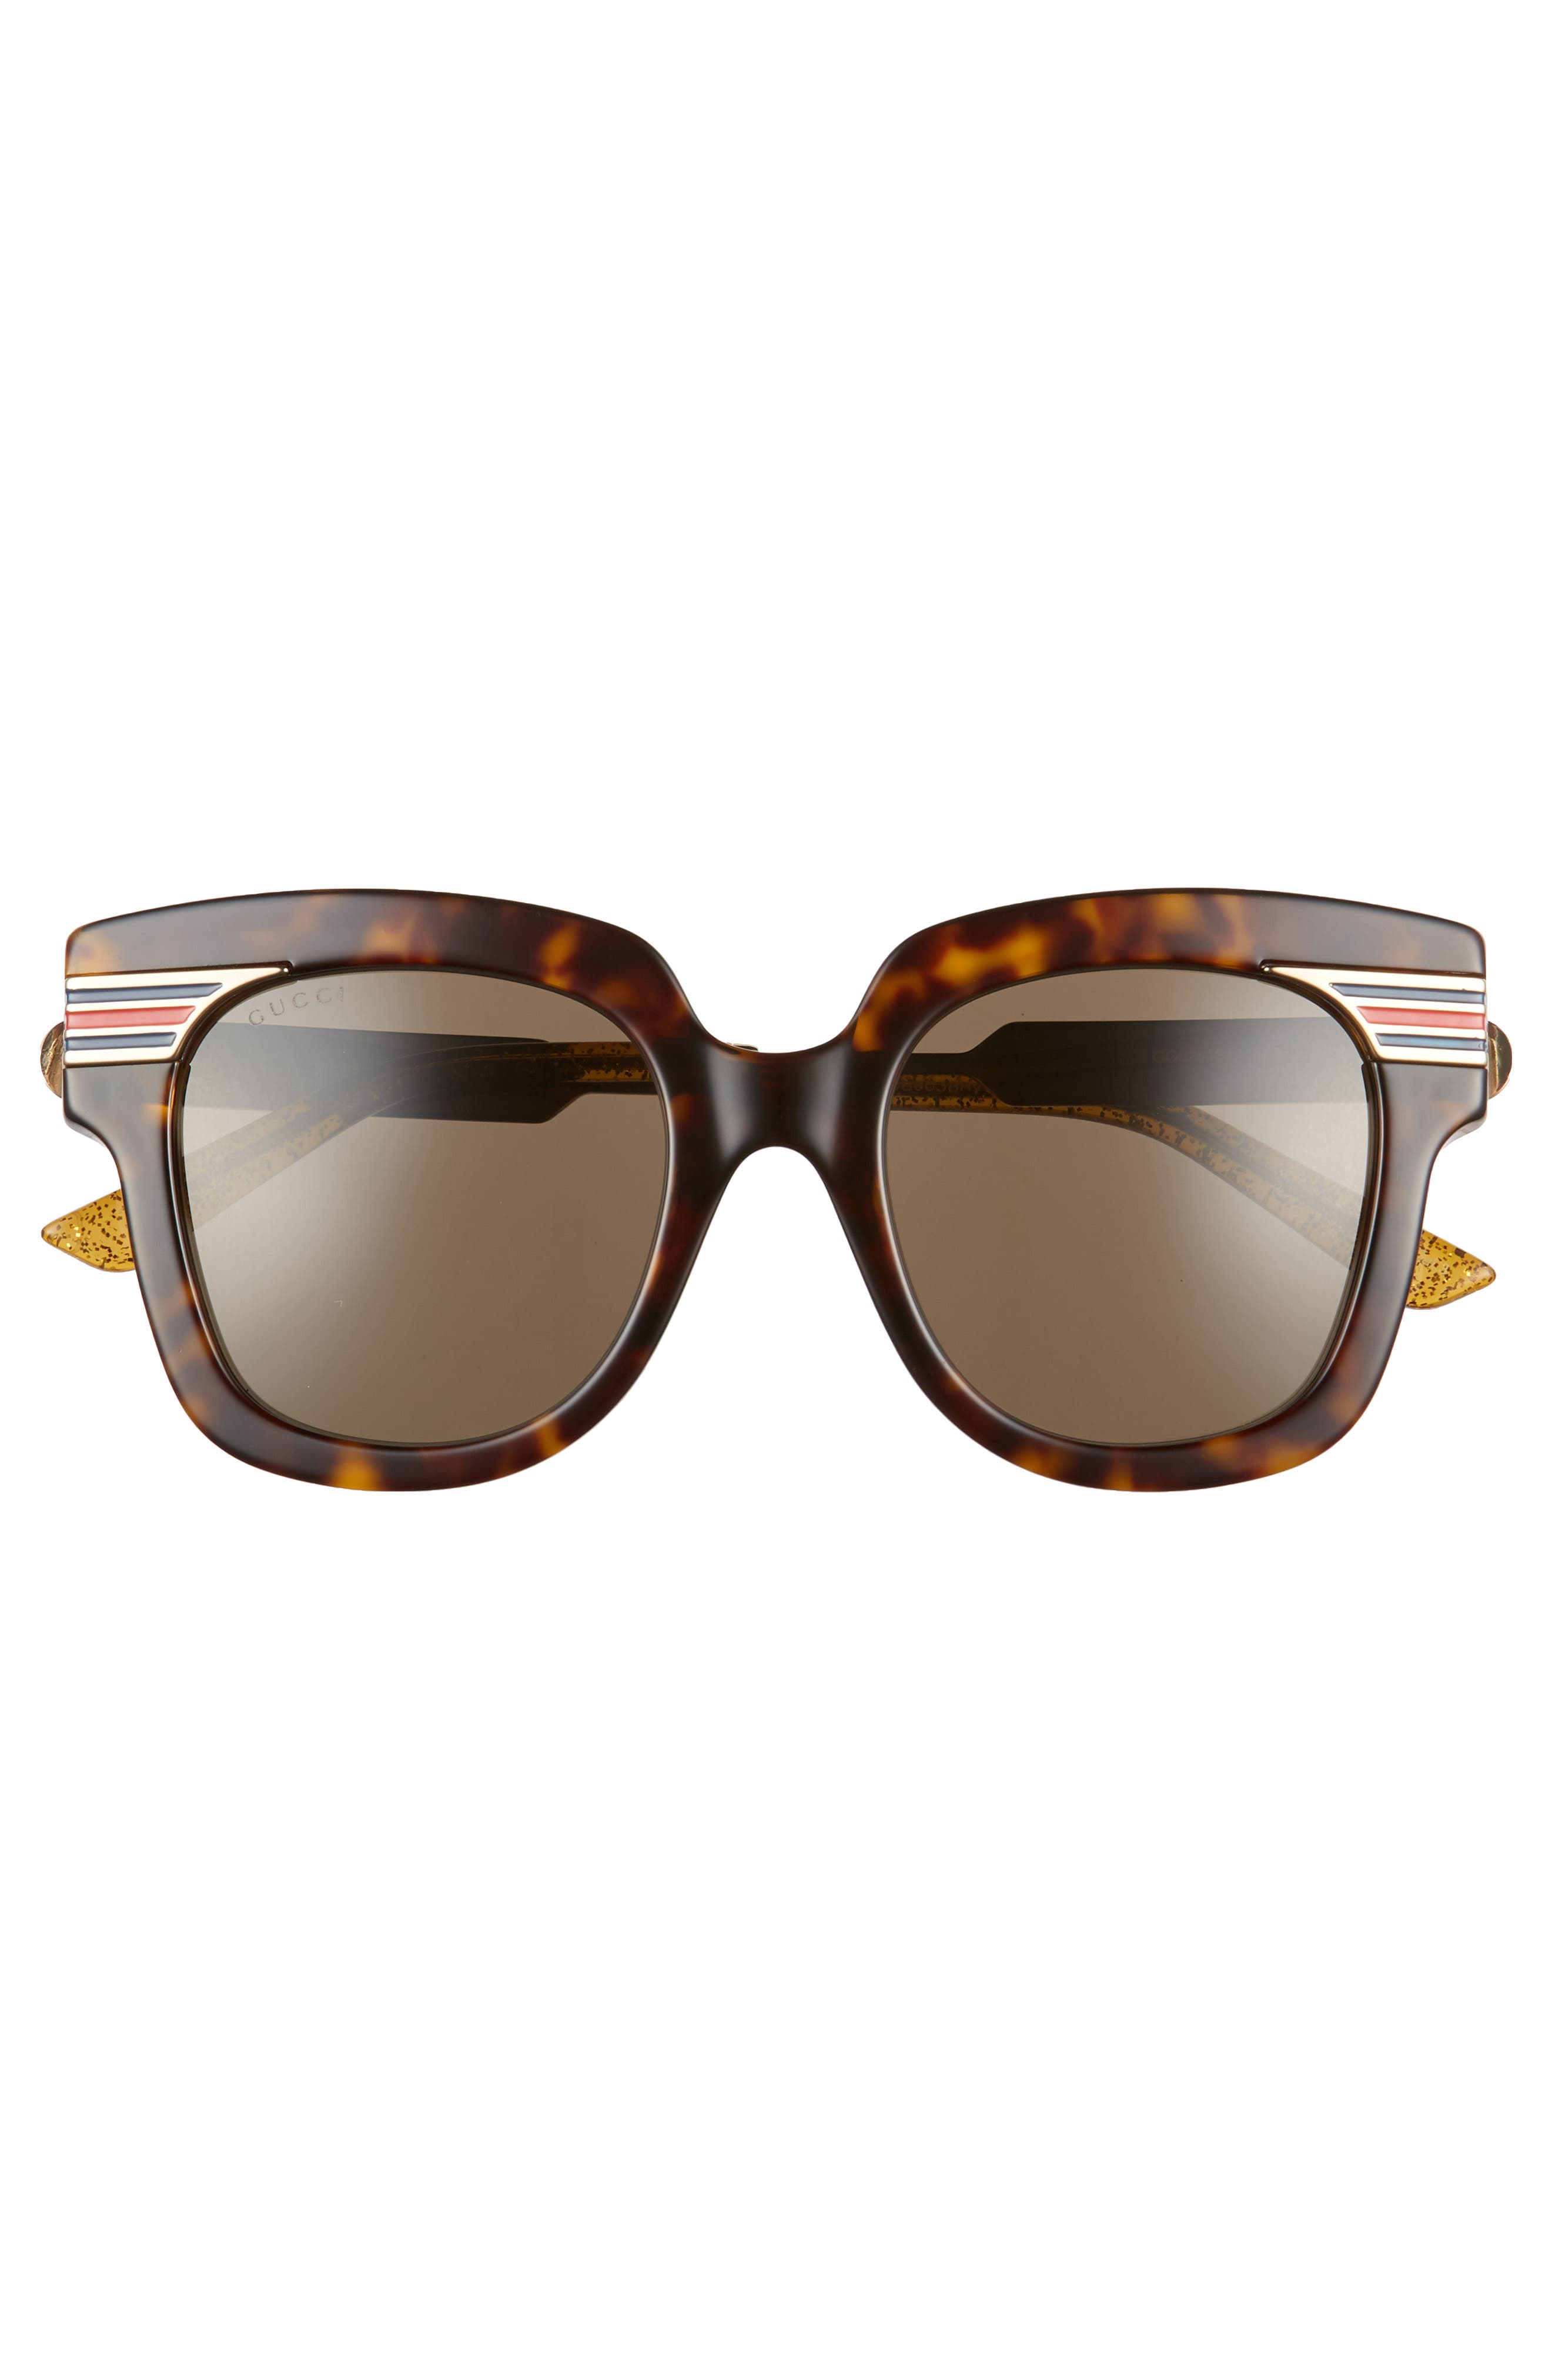 51mm Cat Eye Sunglasses,                             Alternate thumbnail 3, color,                             DARK HAVANA/ GOLD